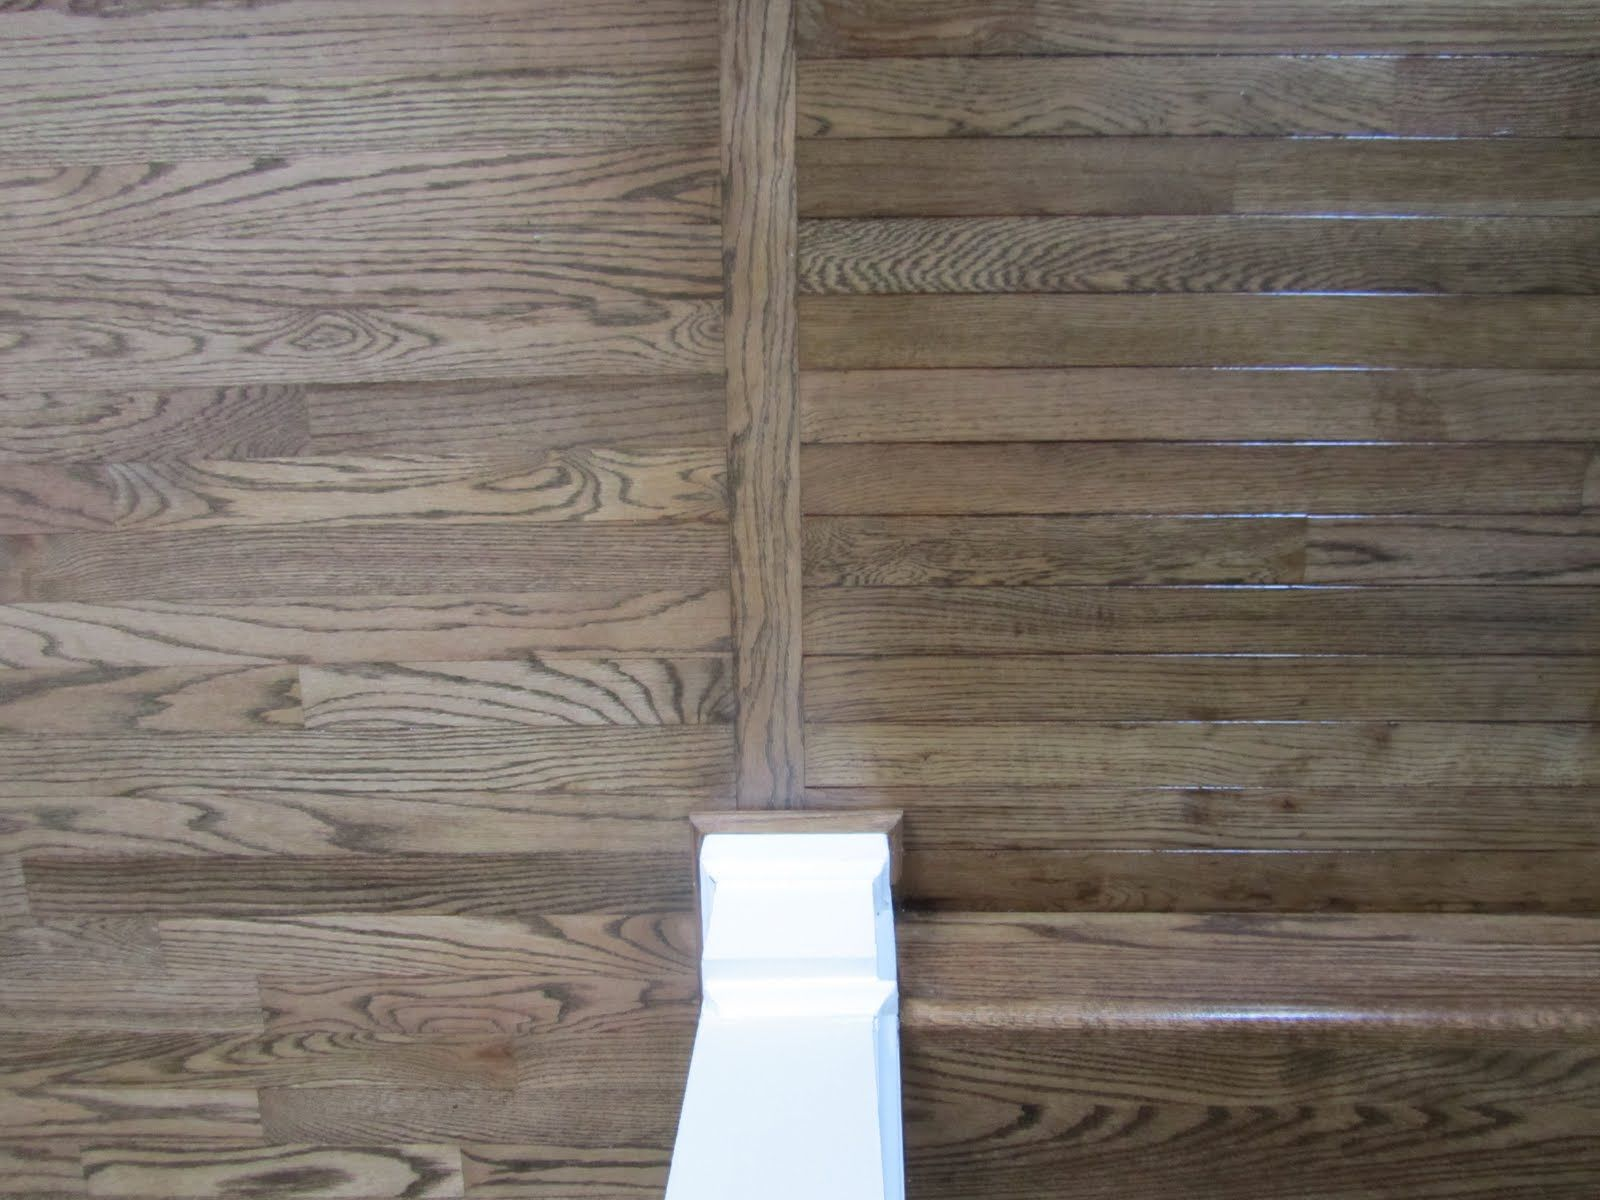 Two Tone Hardwood Floor Ideas Another Kind Of Wood Floor Transition Which Is Closer To